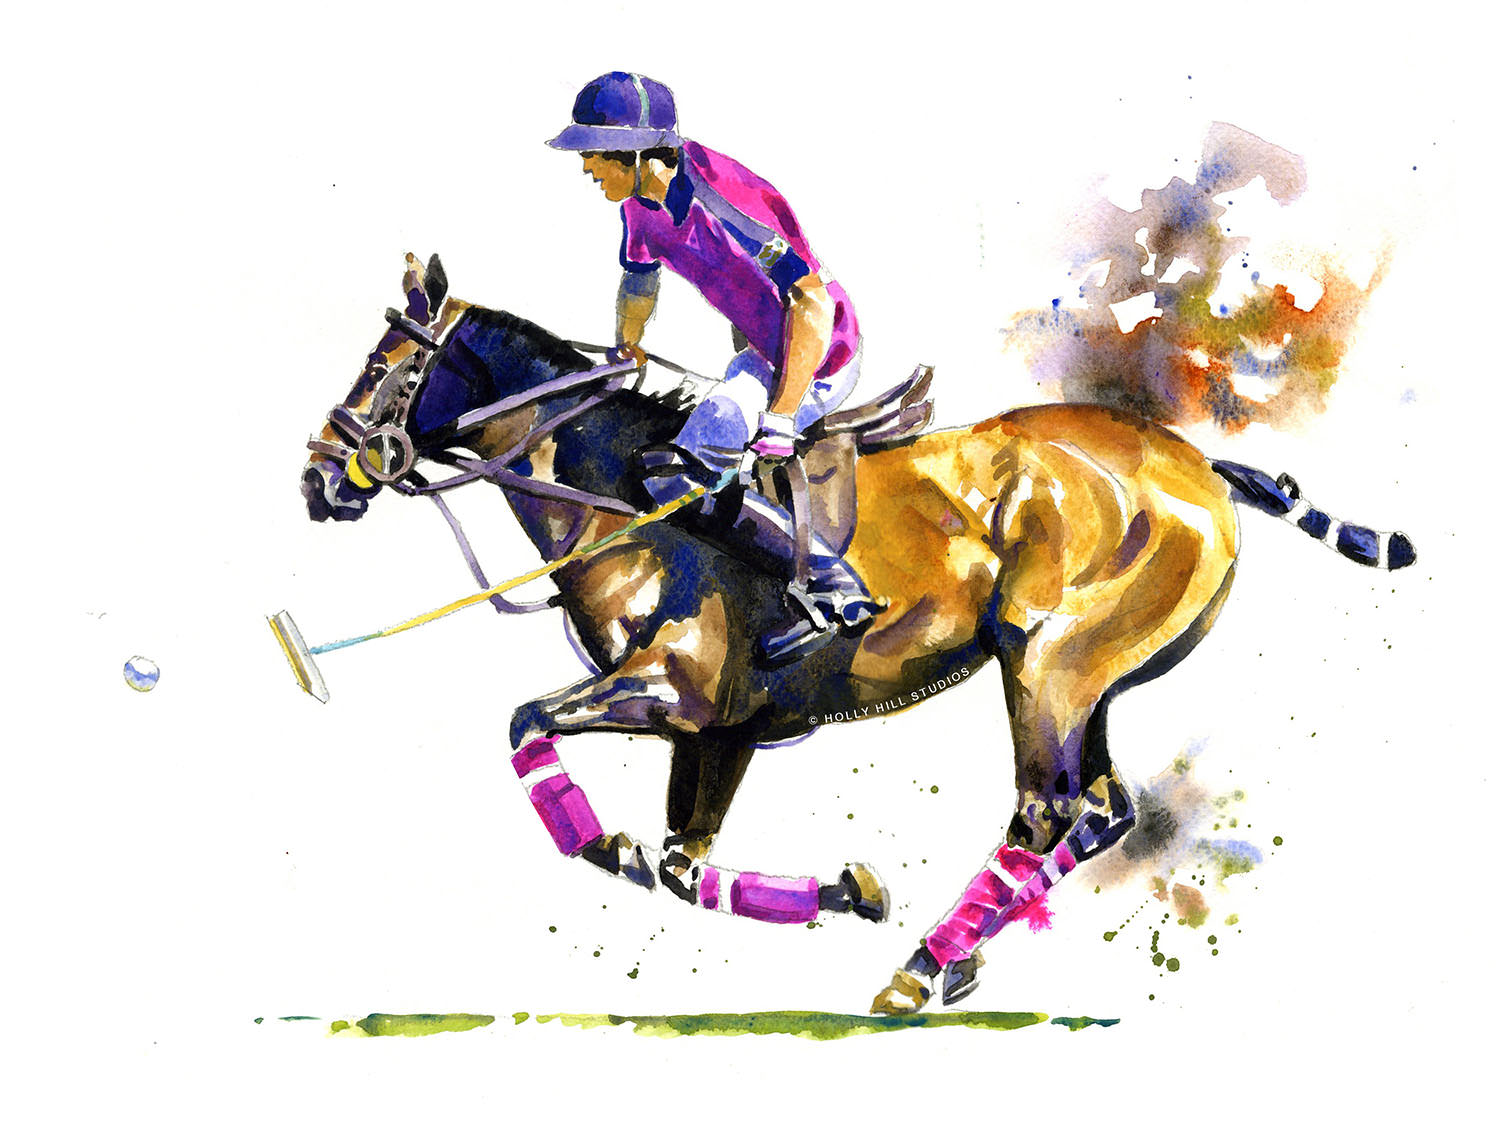 #WorldWatercolorGroup - Polo - horse and rider - Watercolour by Tim Olden - Doodlewash